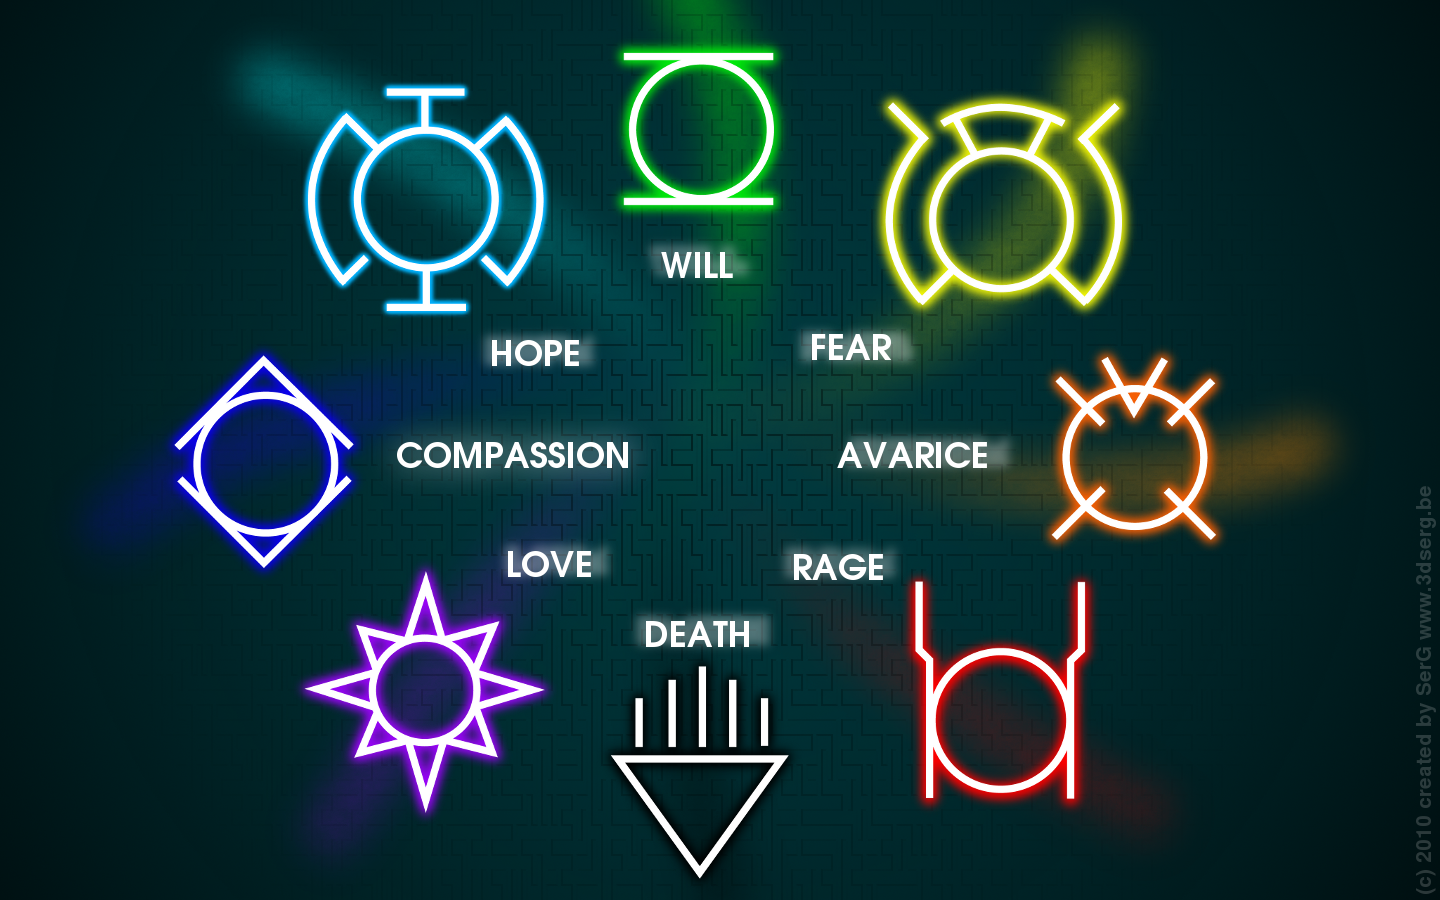 Rainbow lantern corps | DC Fanon Wiki | FANDOM powered by ...